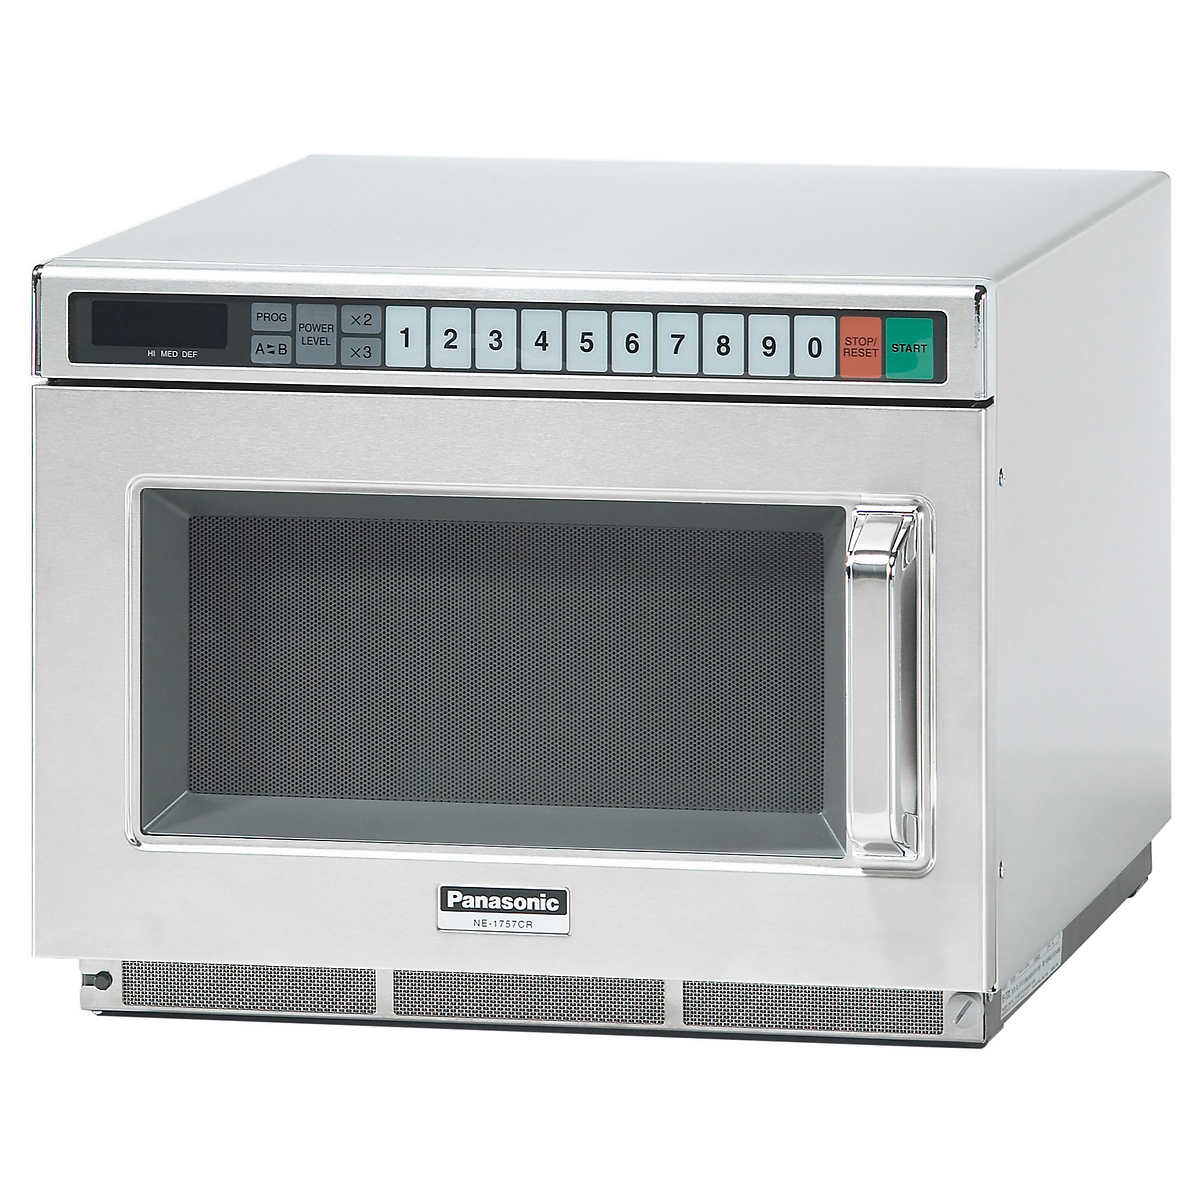 Panasonic 0 6 Cu Ft Commercial Microwave Oven 1200 W 2100